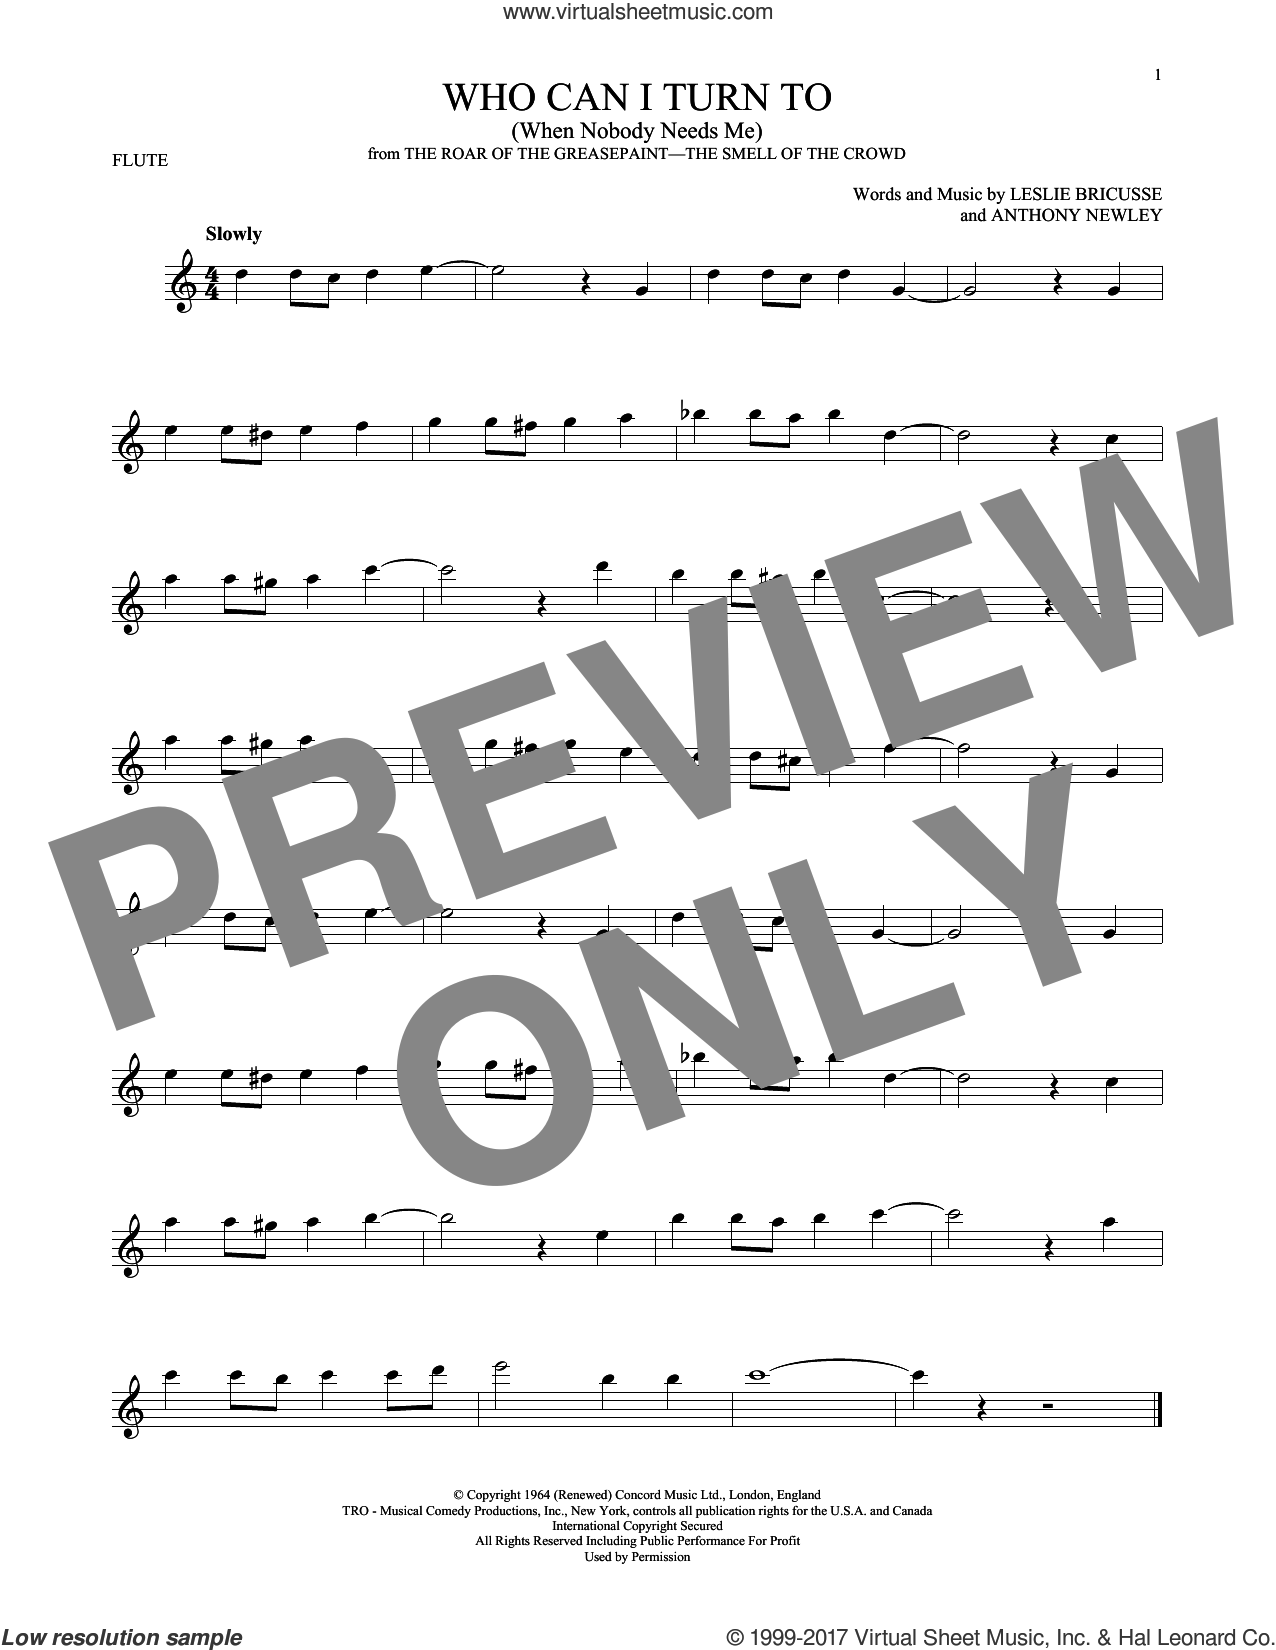 Who Can I Turn To (When Nobody Needs Me) sheet music for flute solo by Anthony Newley and Leslie Bricusse, intermediate